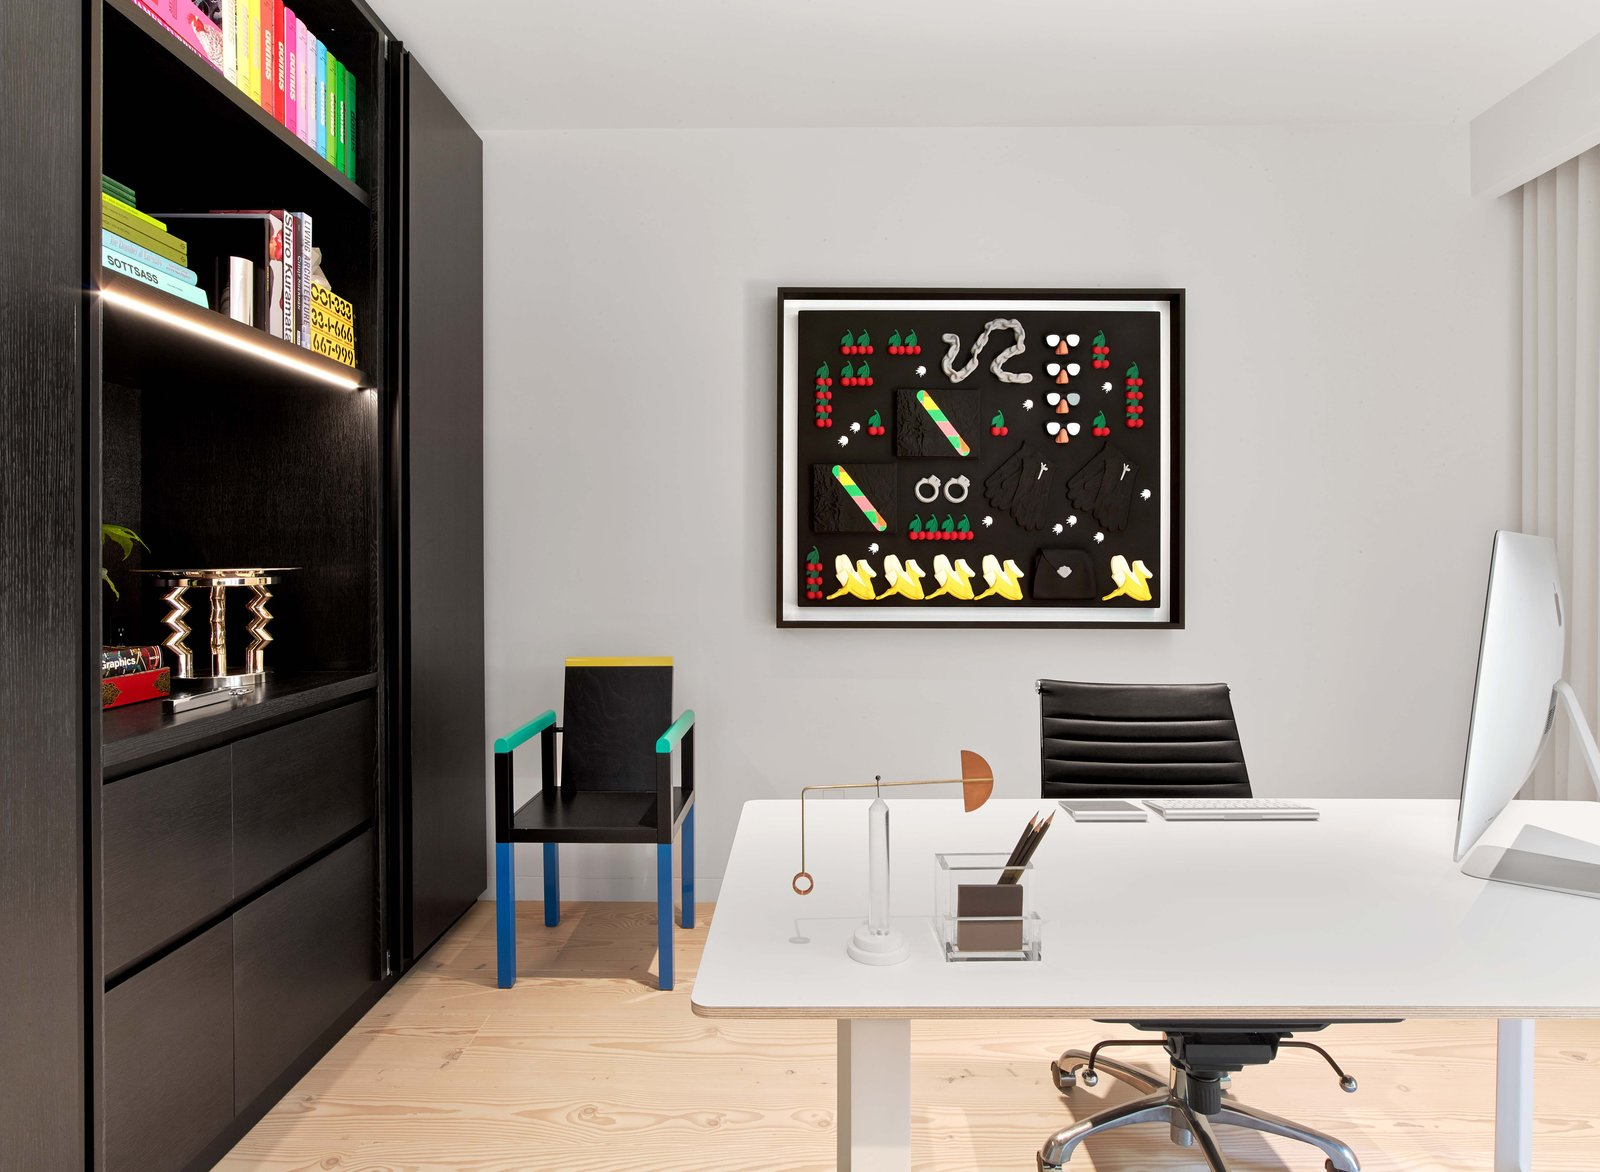 Office, Study Room Type, Chair, Desk, Bookcase, and Light Hardwood Floor  Glen Park Residence by CCS ARCHITECTURE